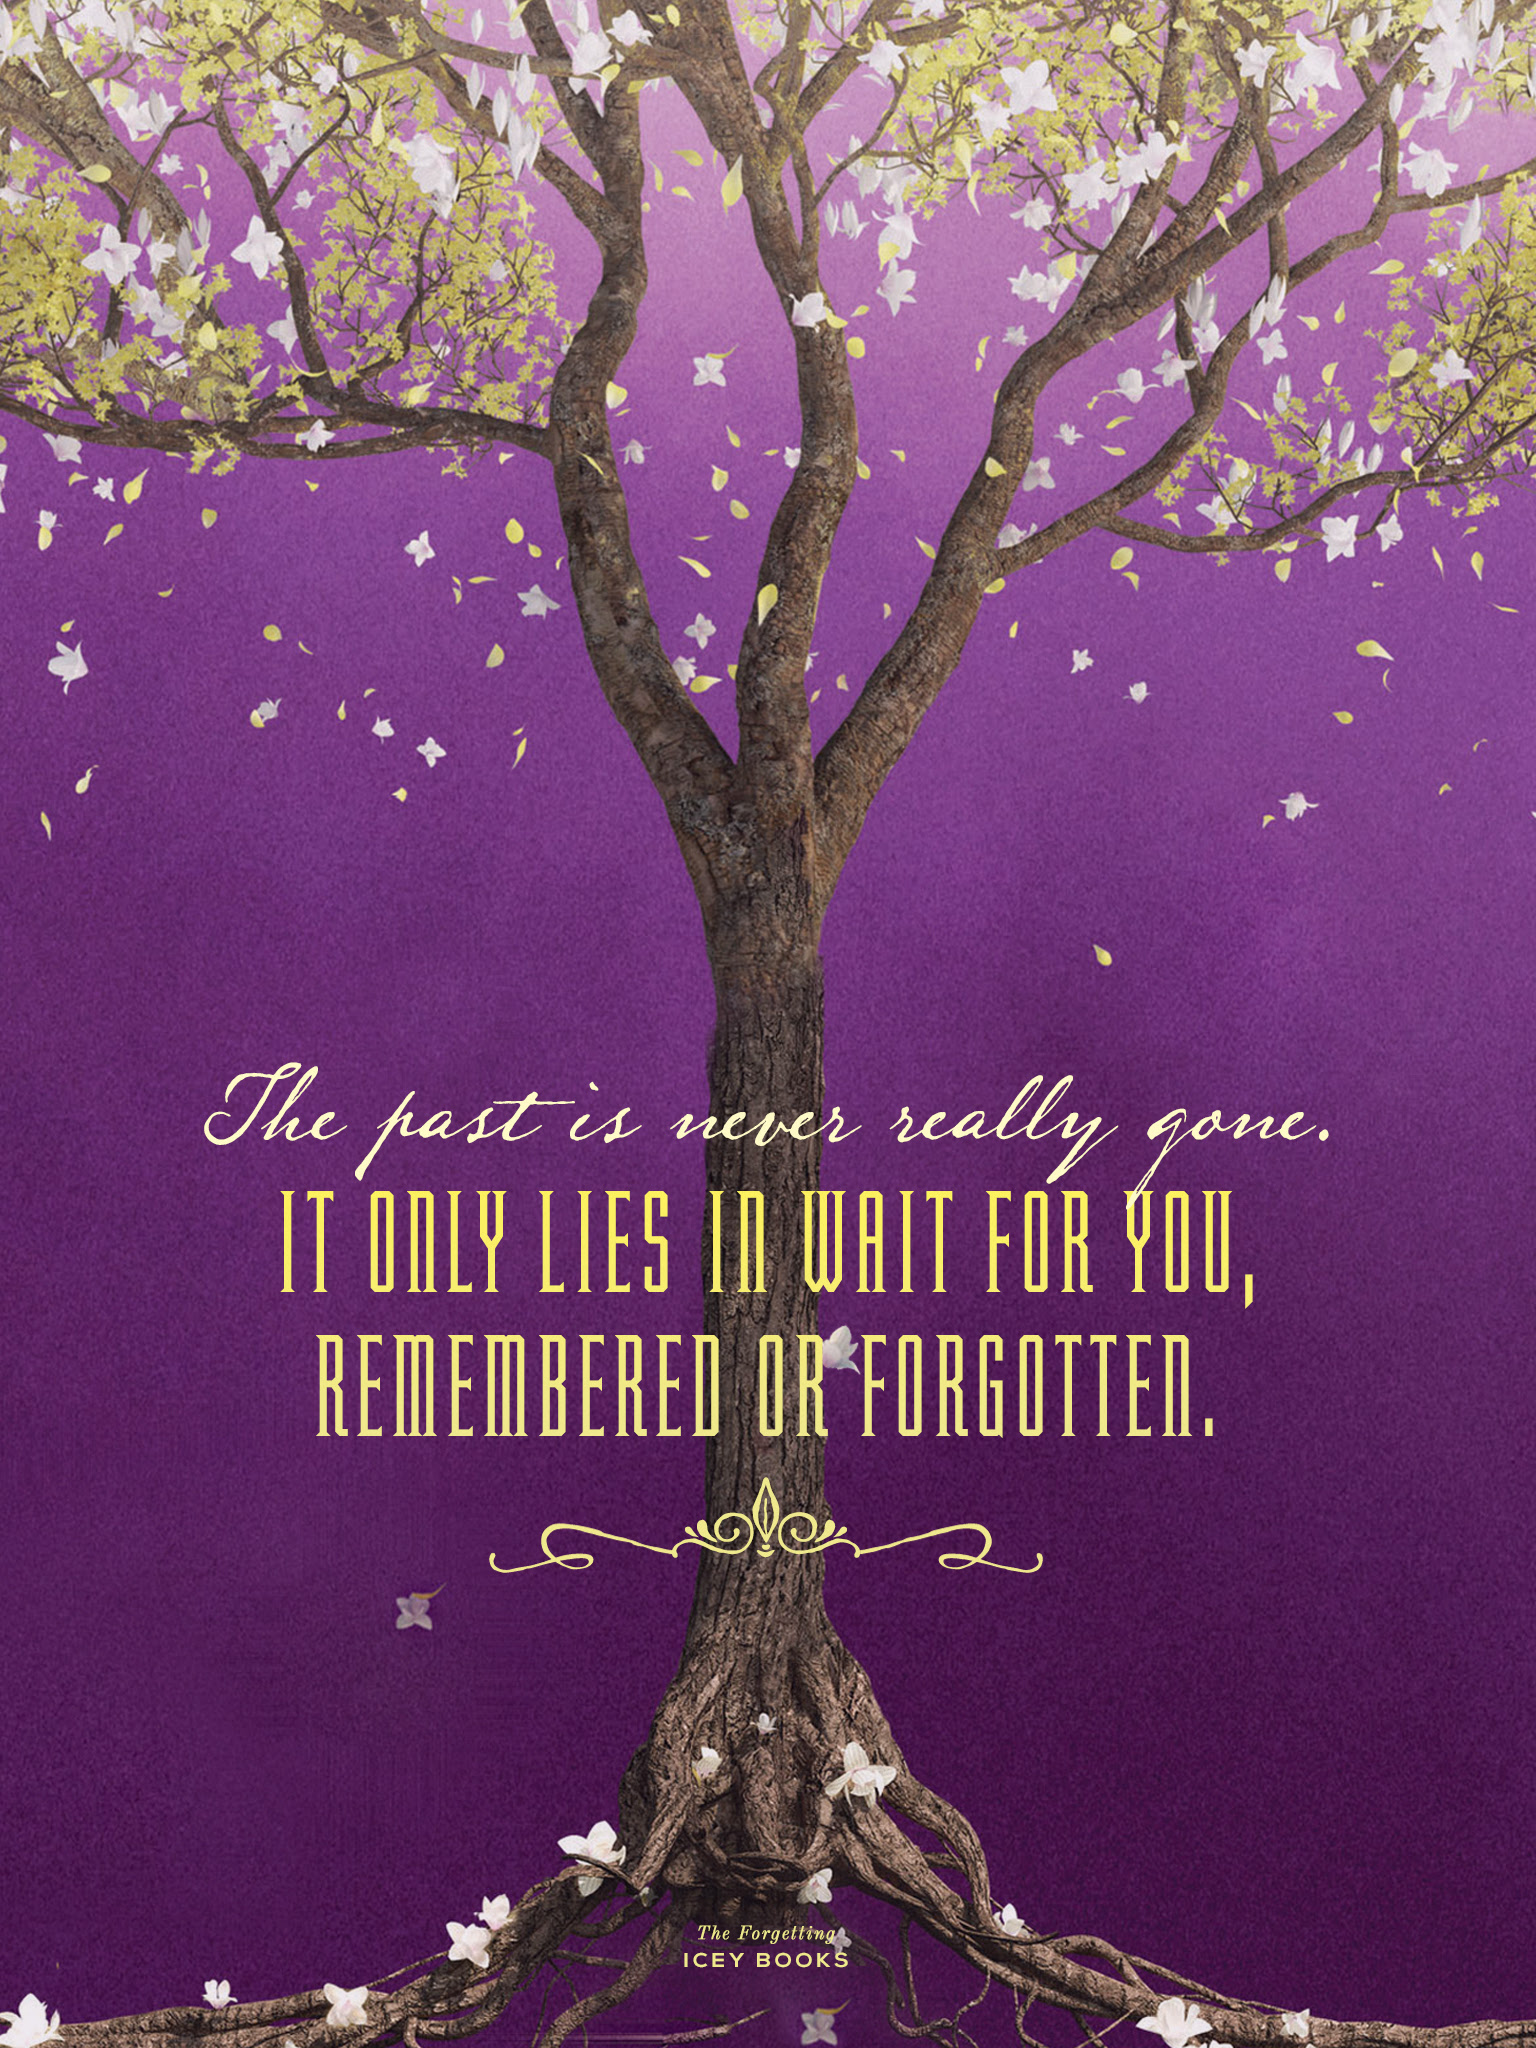 Quote Candy 57 Download A Wallpaper For The Forgetting By Sharon